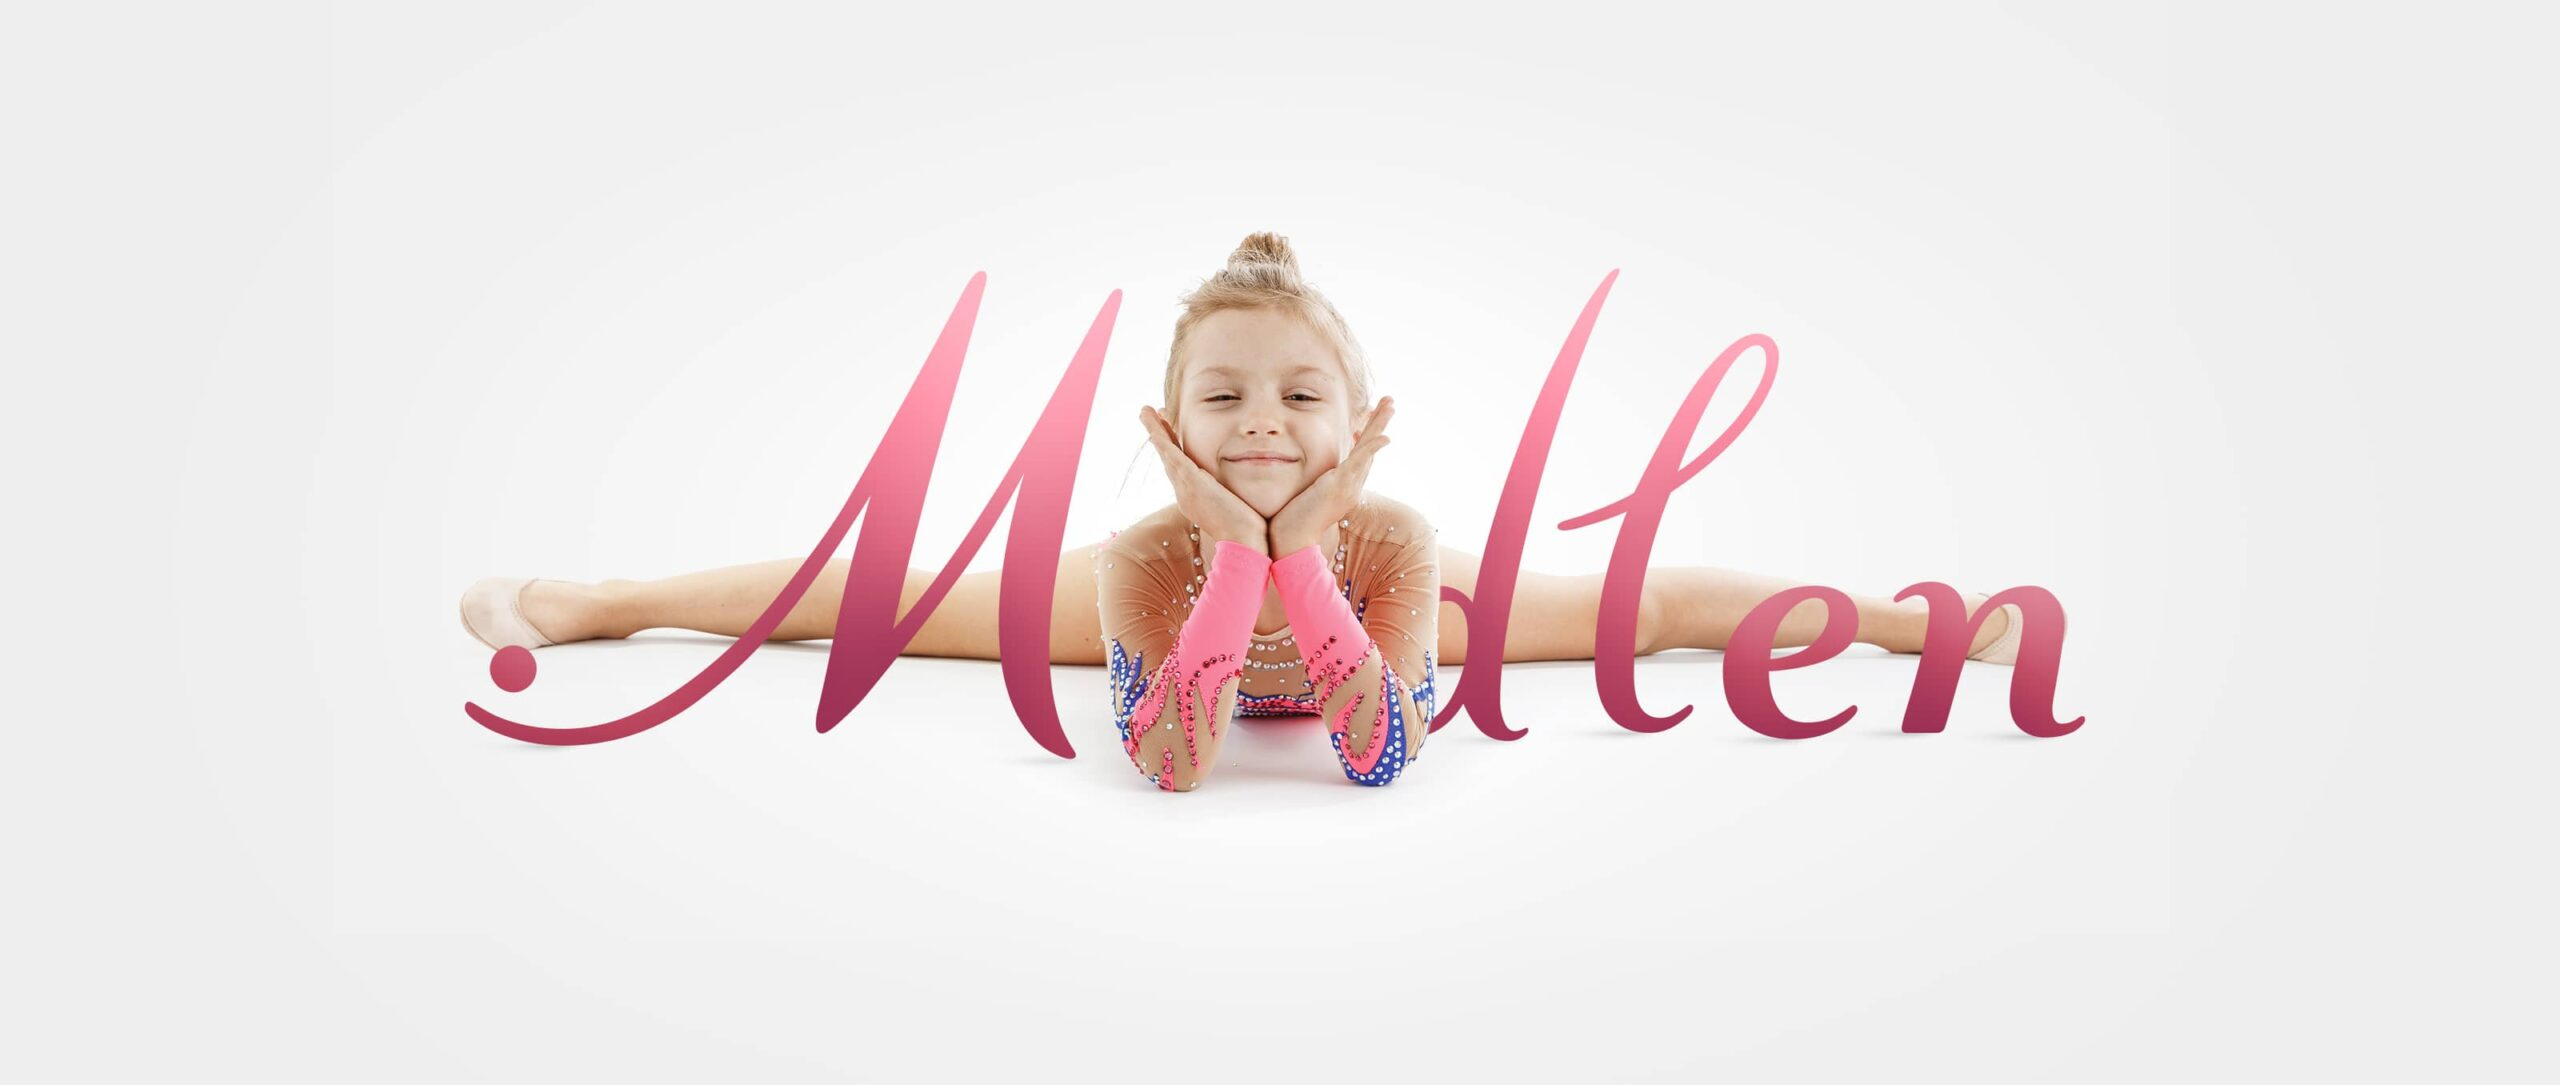 Beautiful young gymnast intwine against the Modlen logo